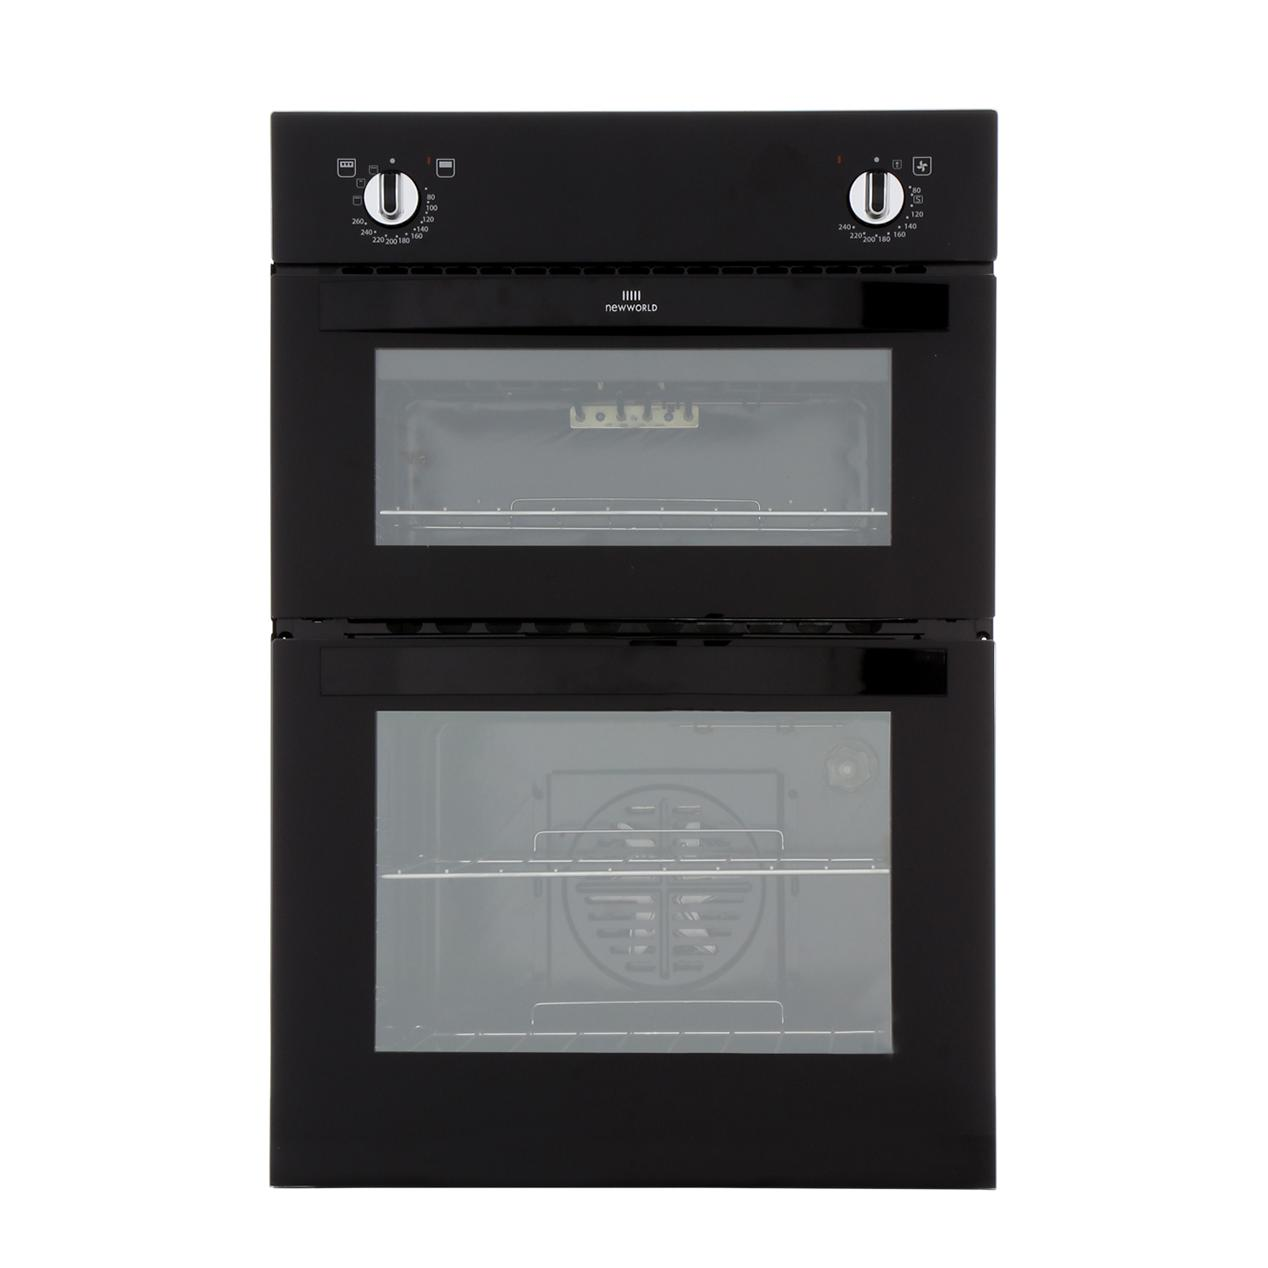 lg electric double oven manual